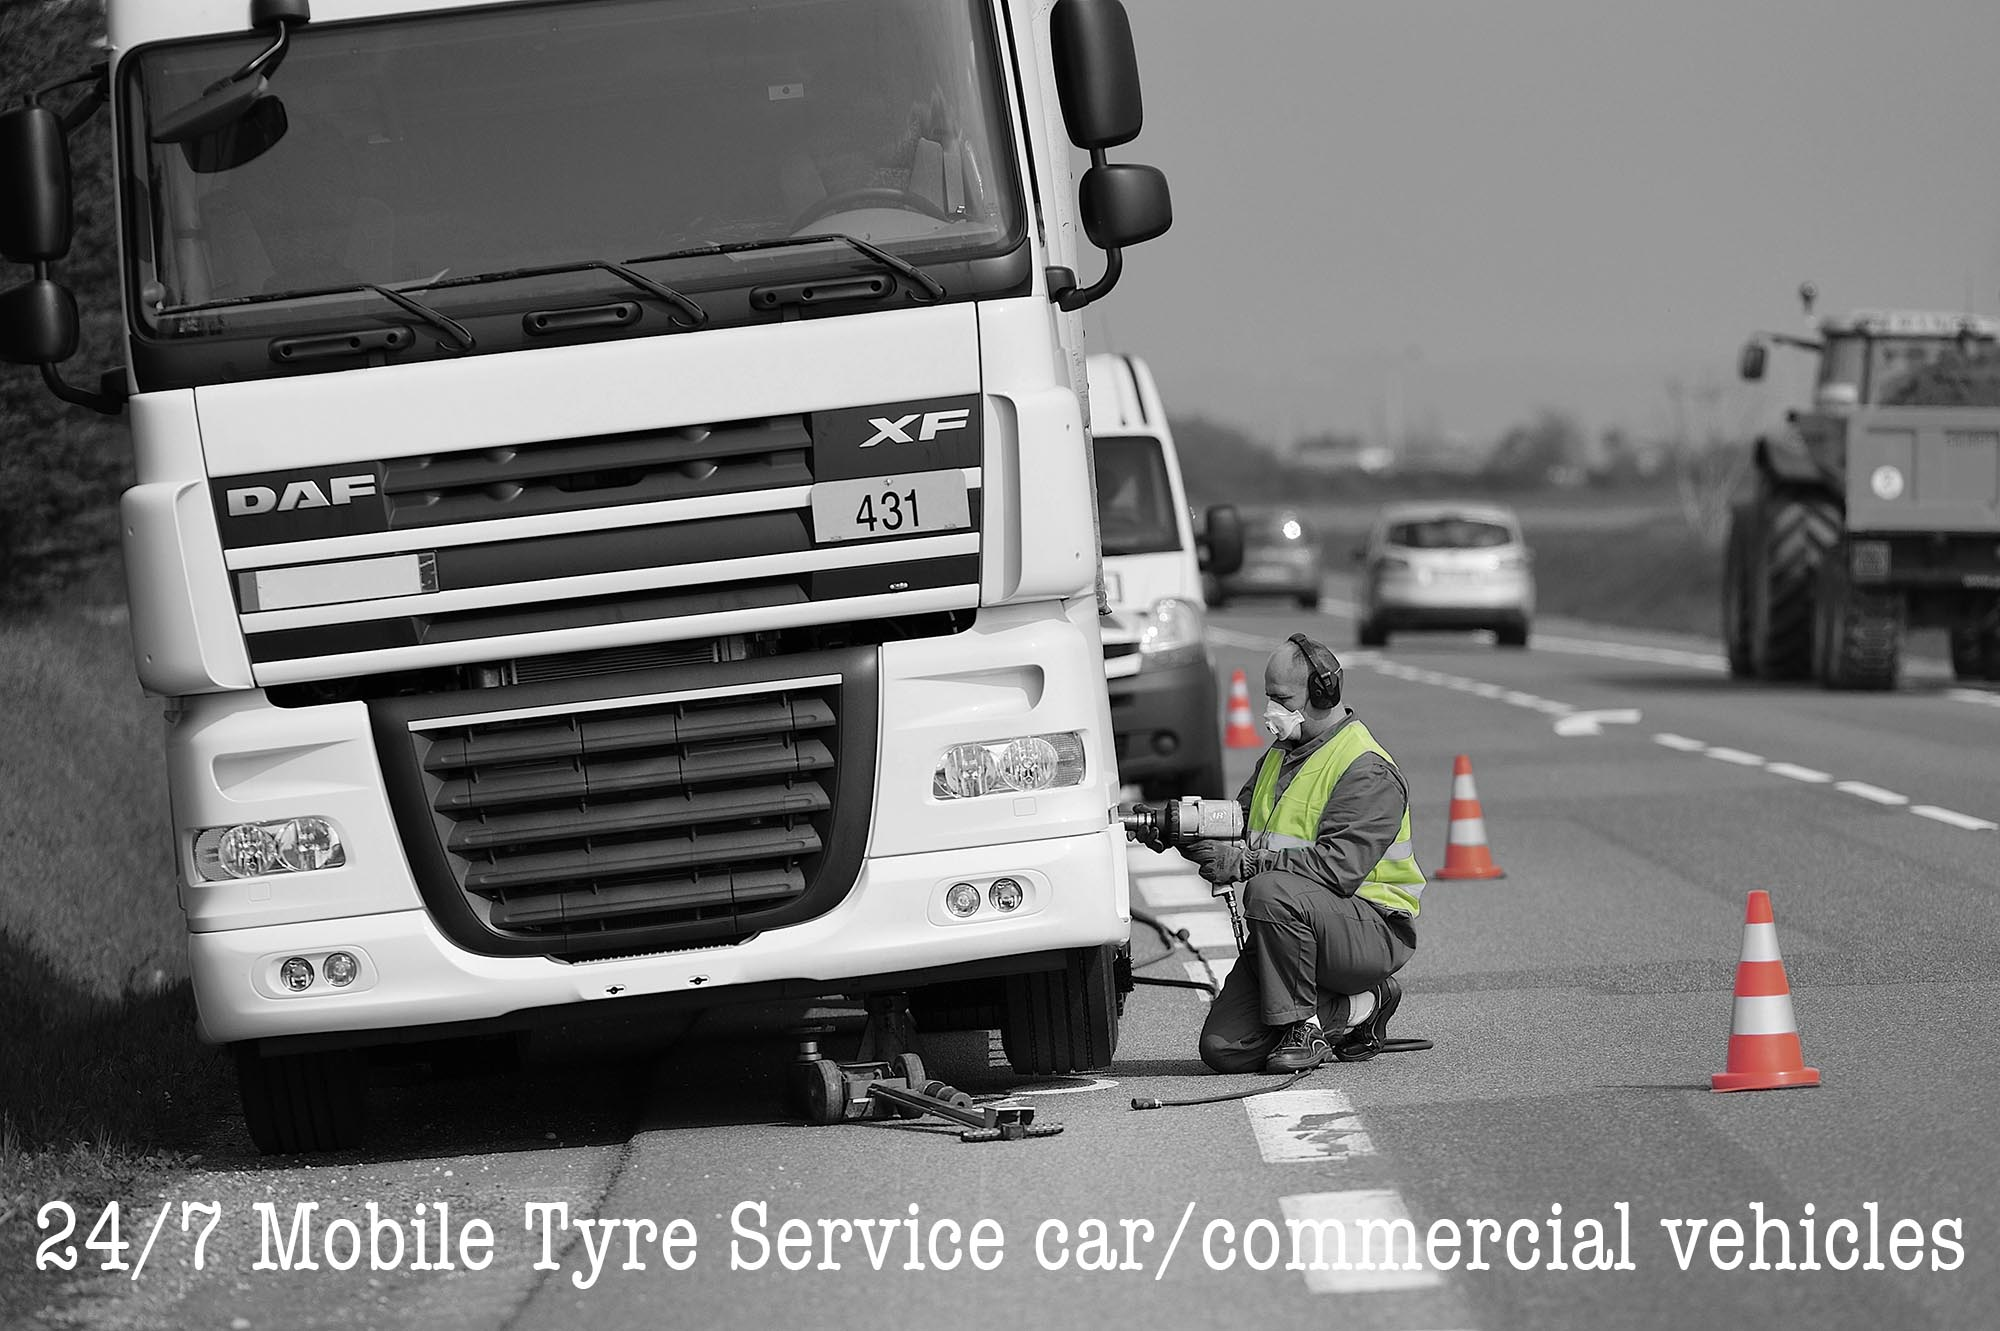 Mobile Tyre Service